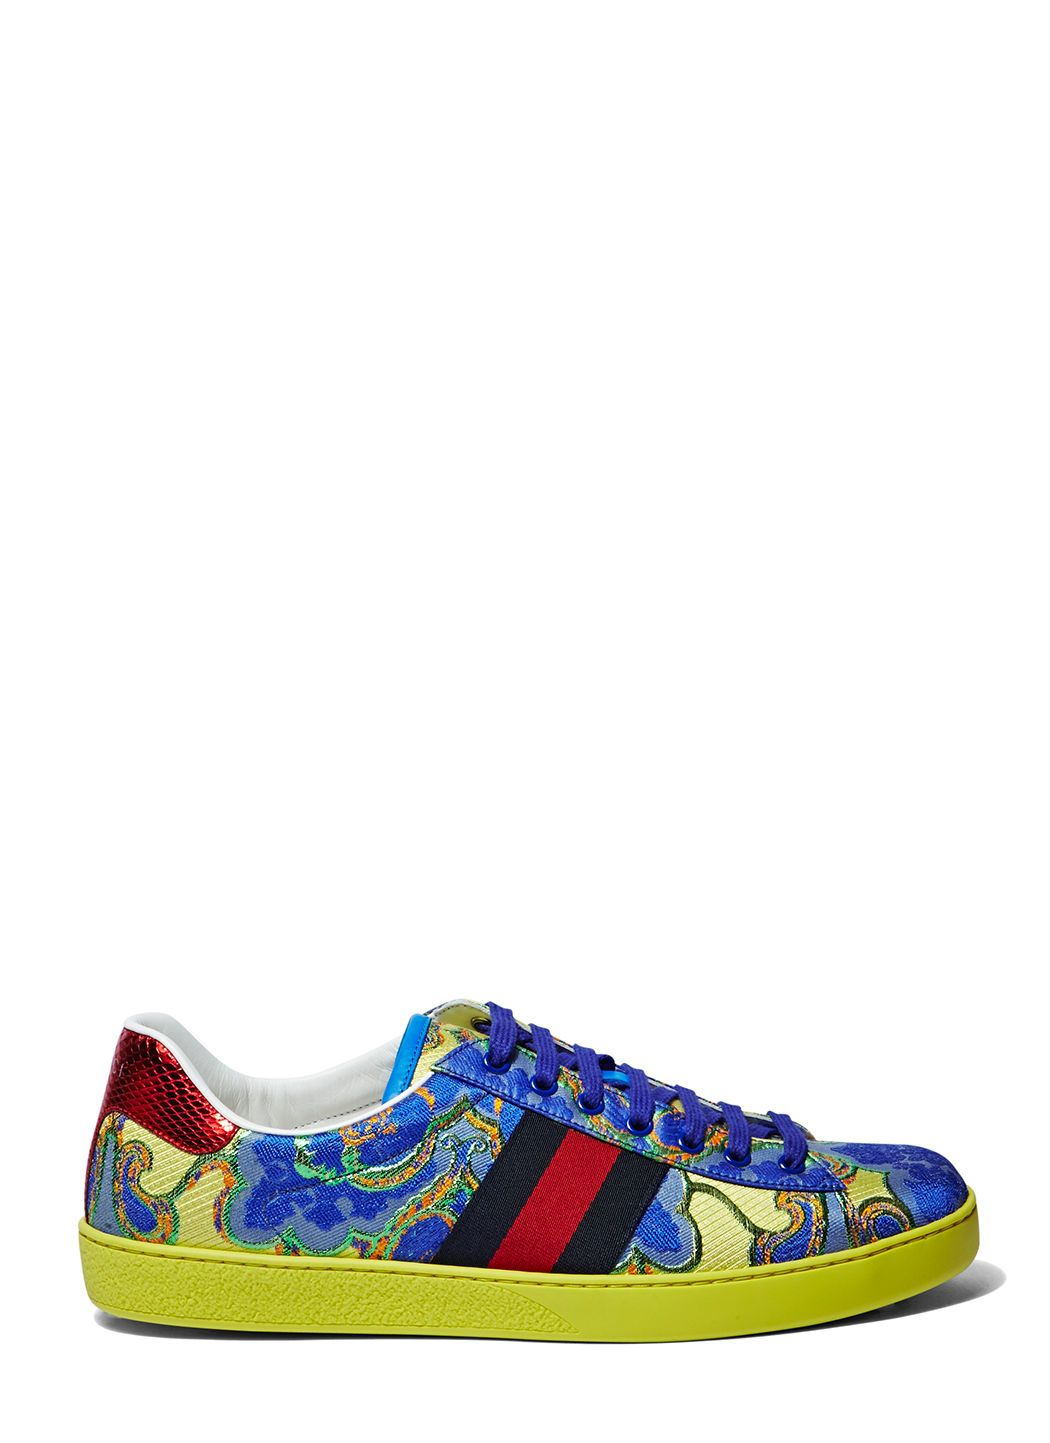 483d99270 GUCCI Men S Metallic Jacquard Sneakers In Yellow And Blue.  gucci  shoes